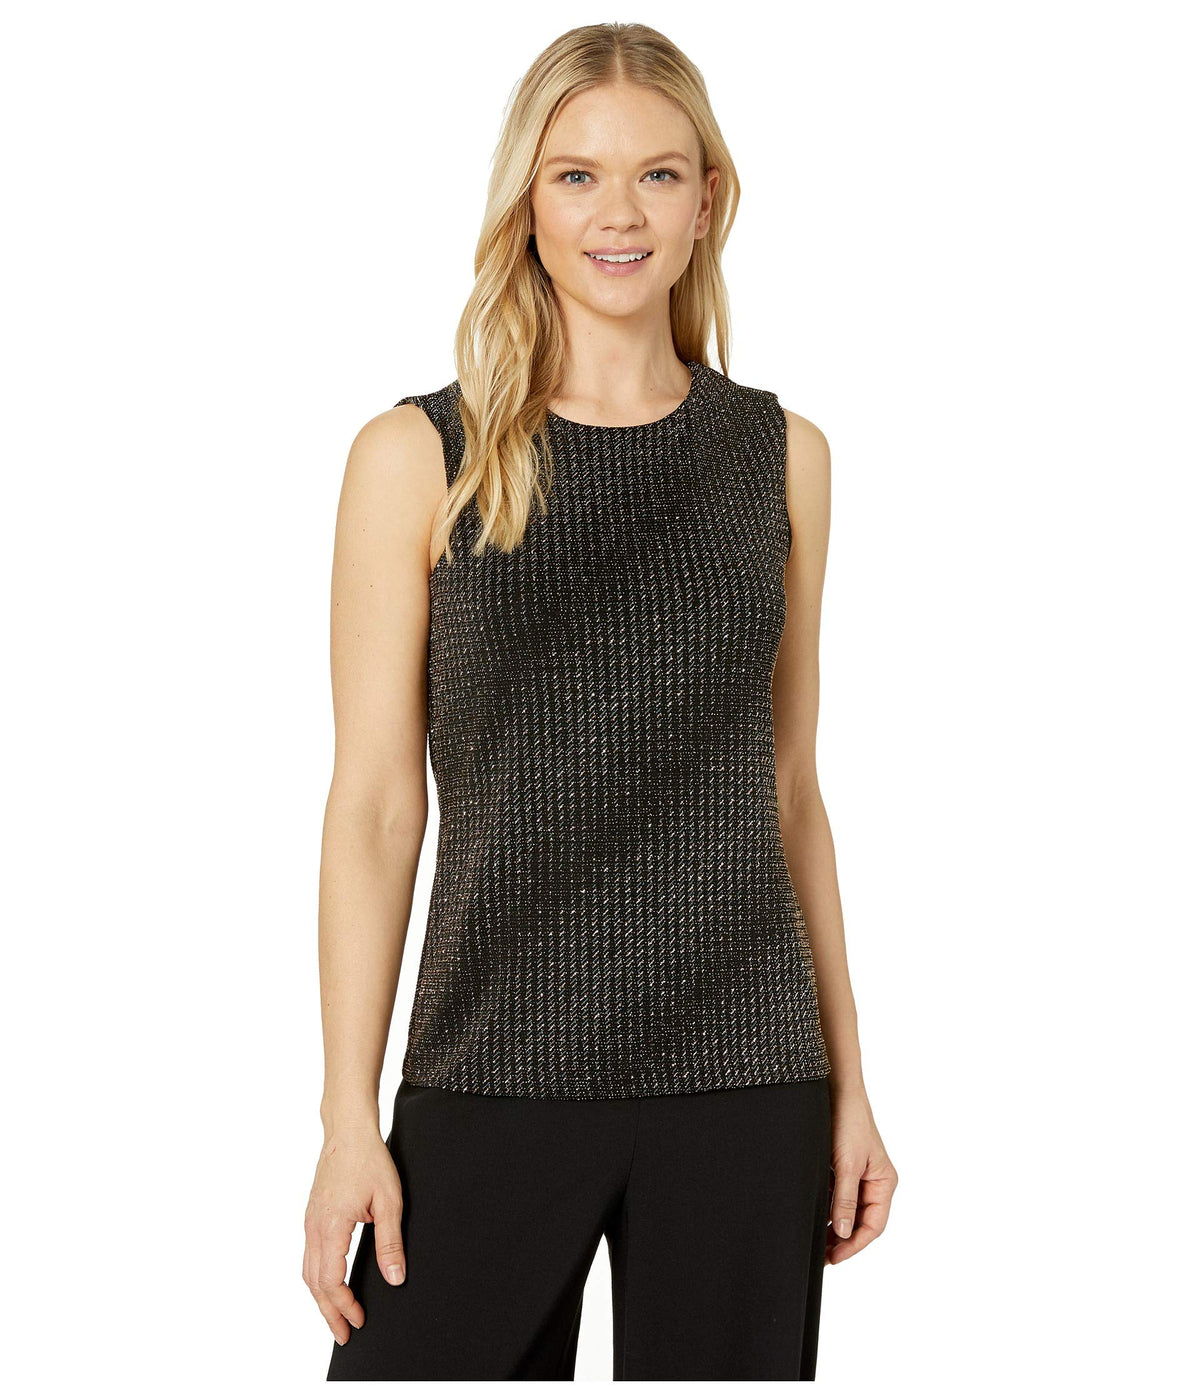 Sleeveless Gold Textured Knit Top